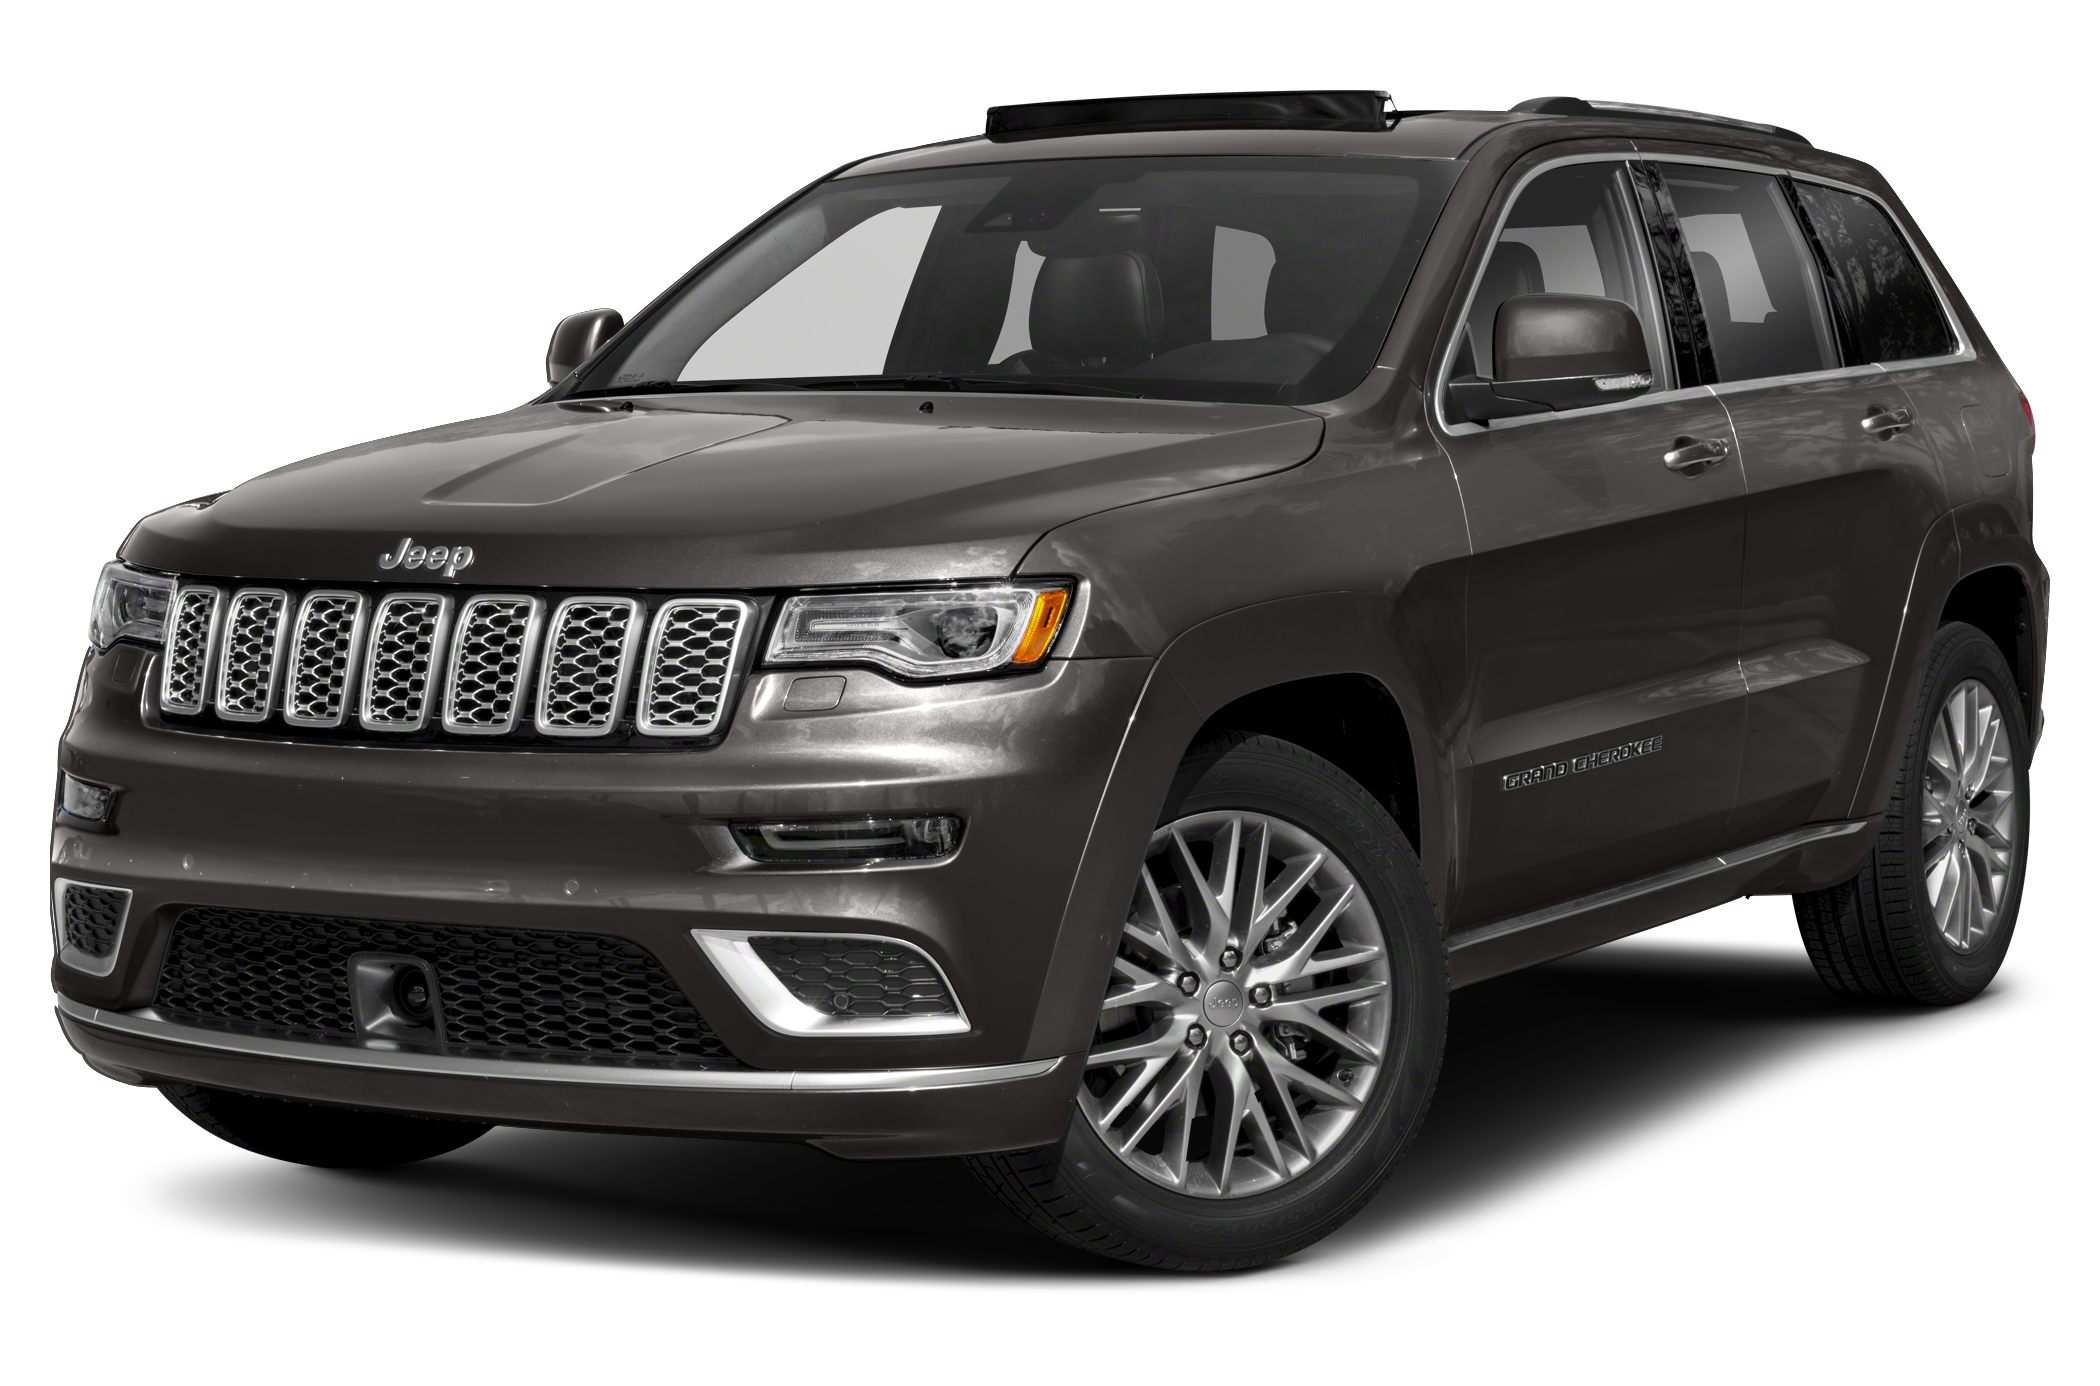 85 Gallery of 2020 Jeep Grand Cherokee Interior Review by 2020 Jeep Grand Cherokee Interior